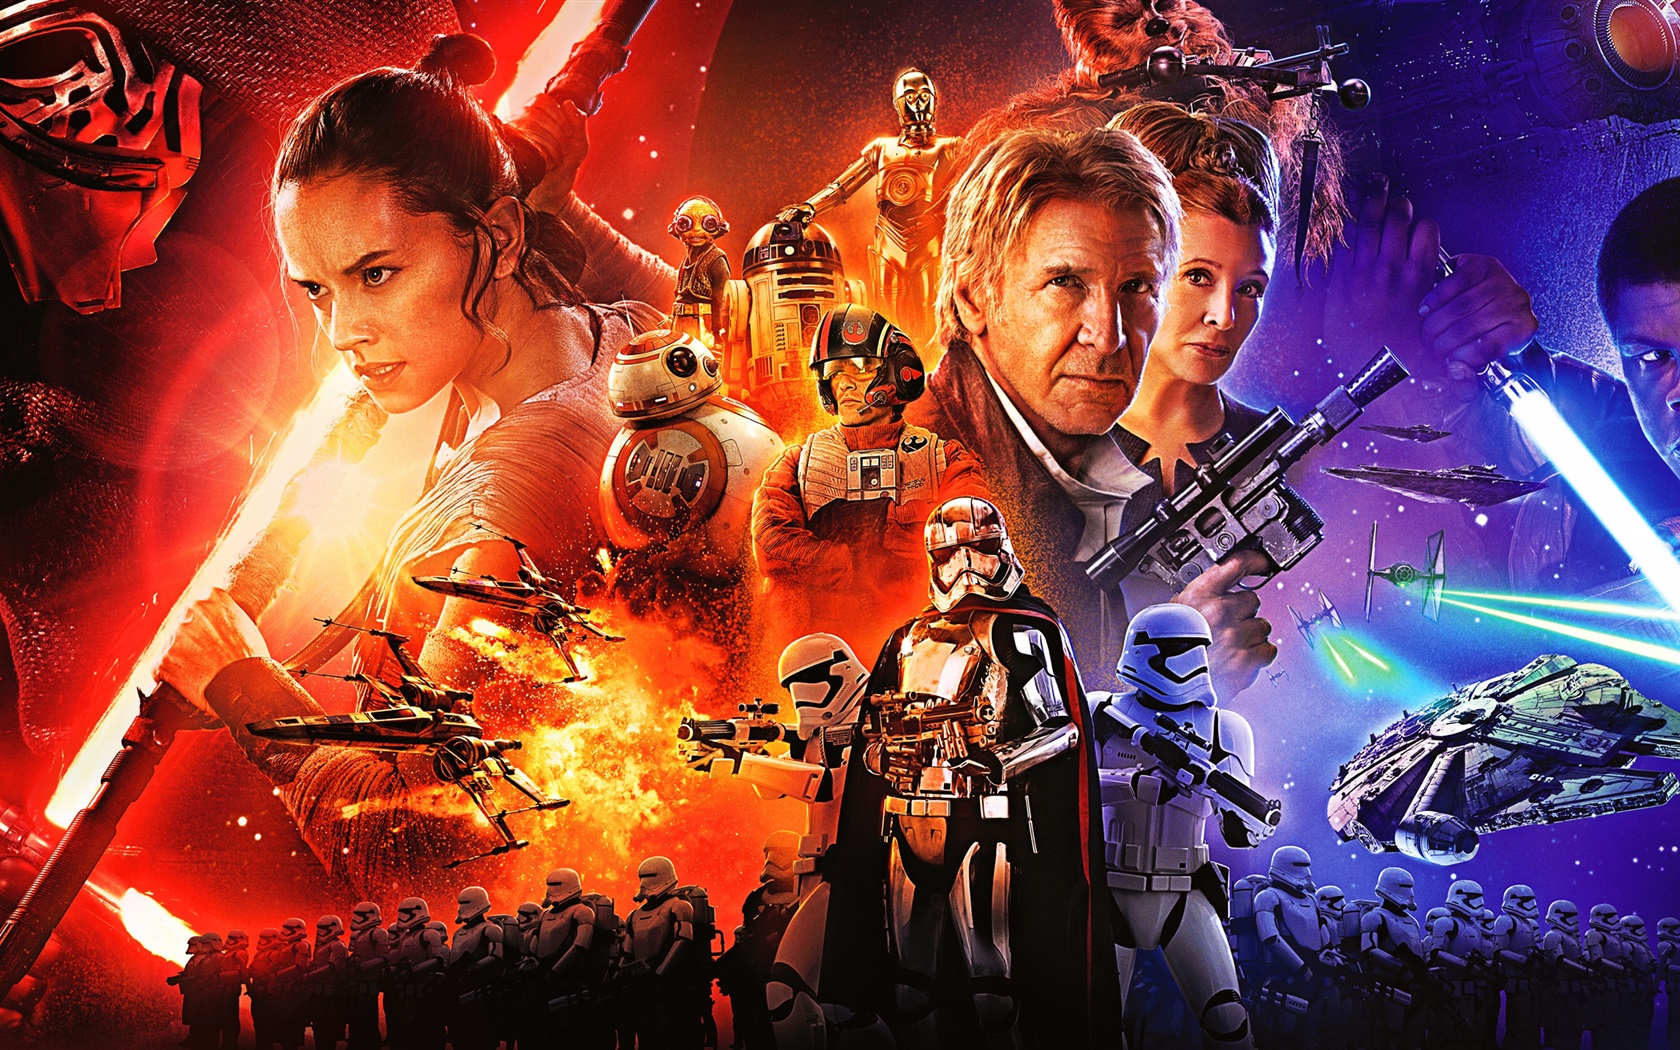 Star Wars The Force Awakens Wallpaper: Wallpaper Star Wars Episode VII: The Force Awakens